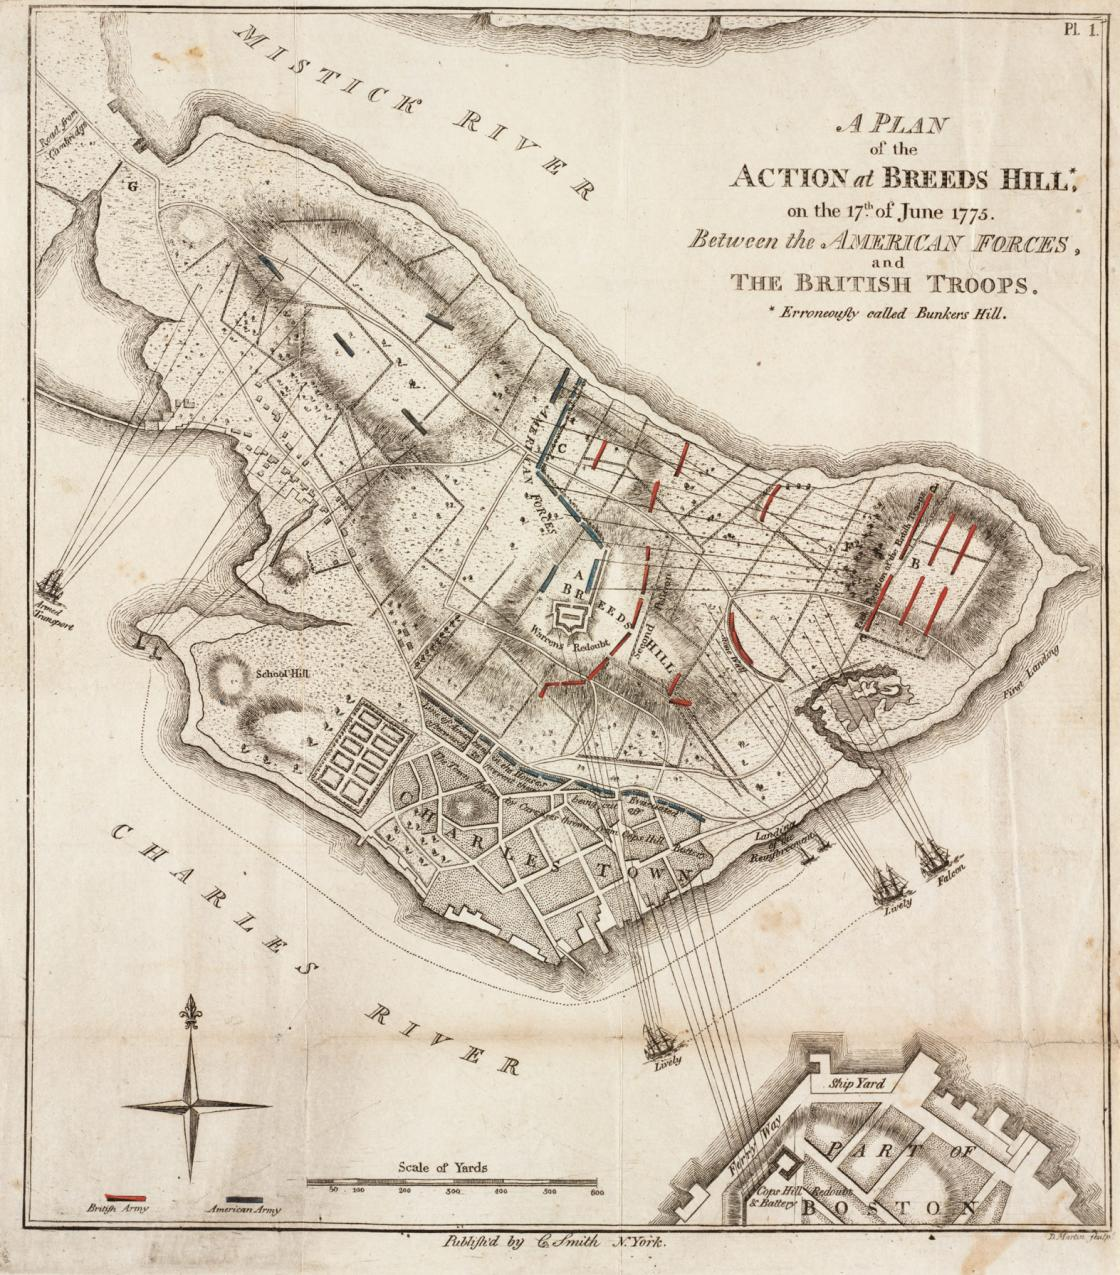 Bunker Hill - Action at Breeds Hill on June 17, 1775